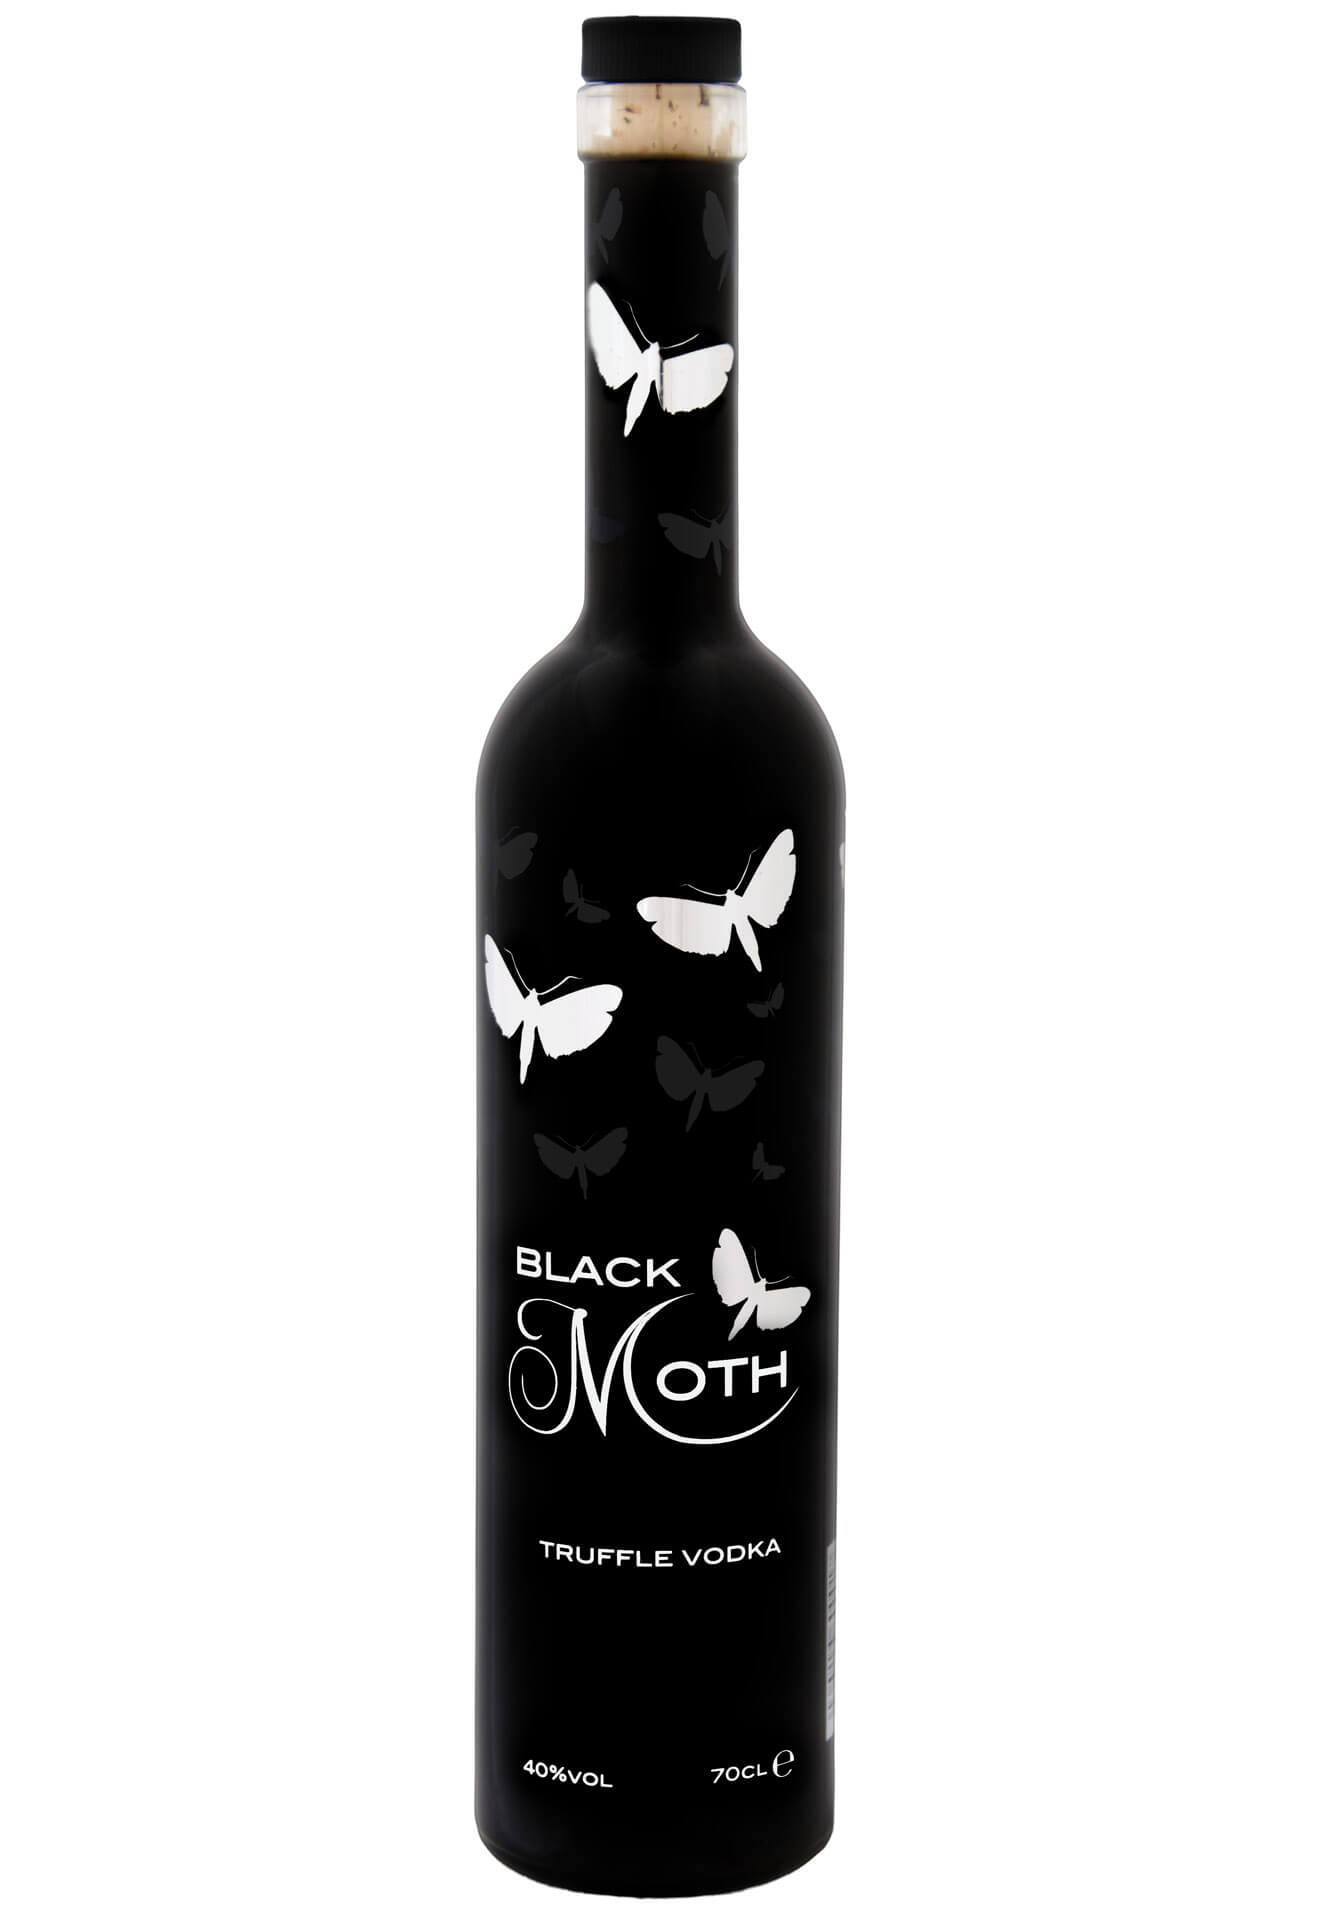 Black Moth Vodka